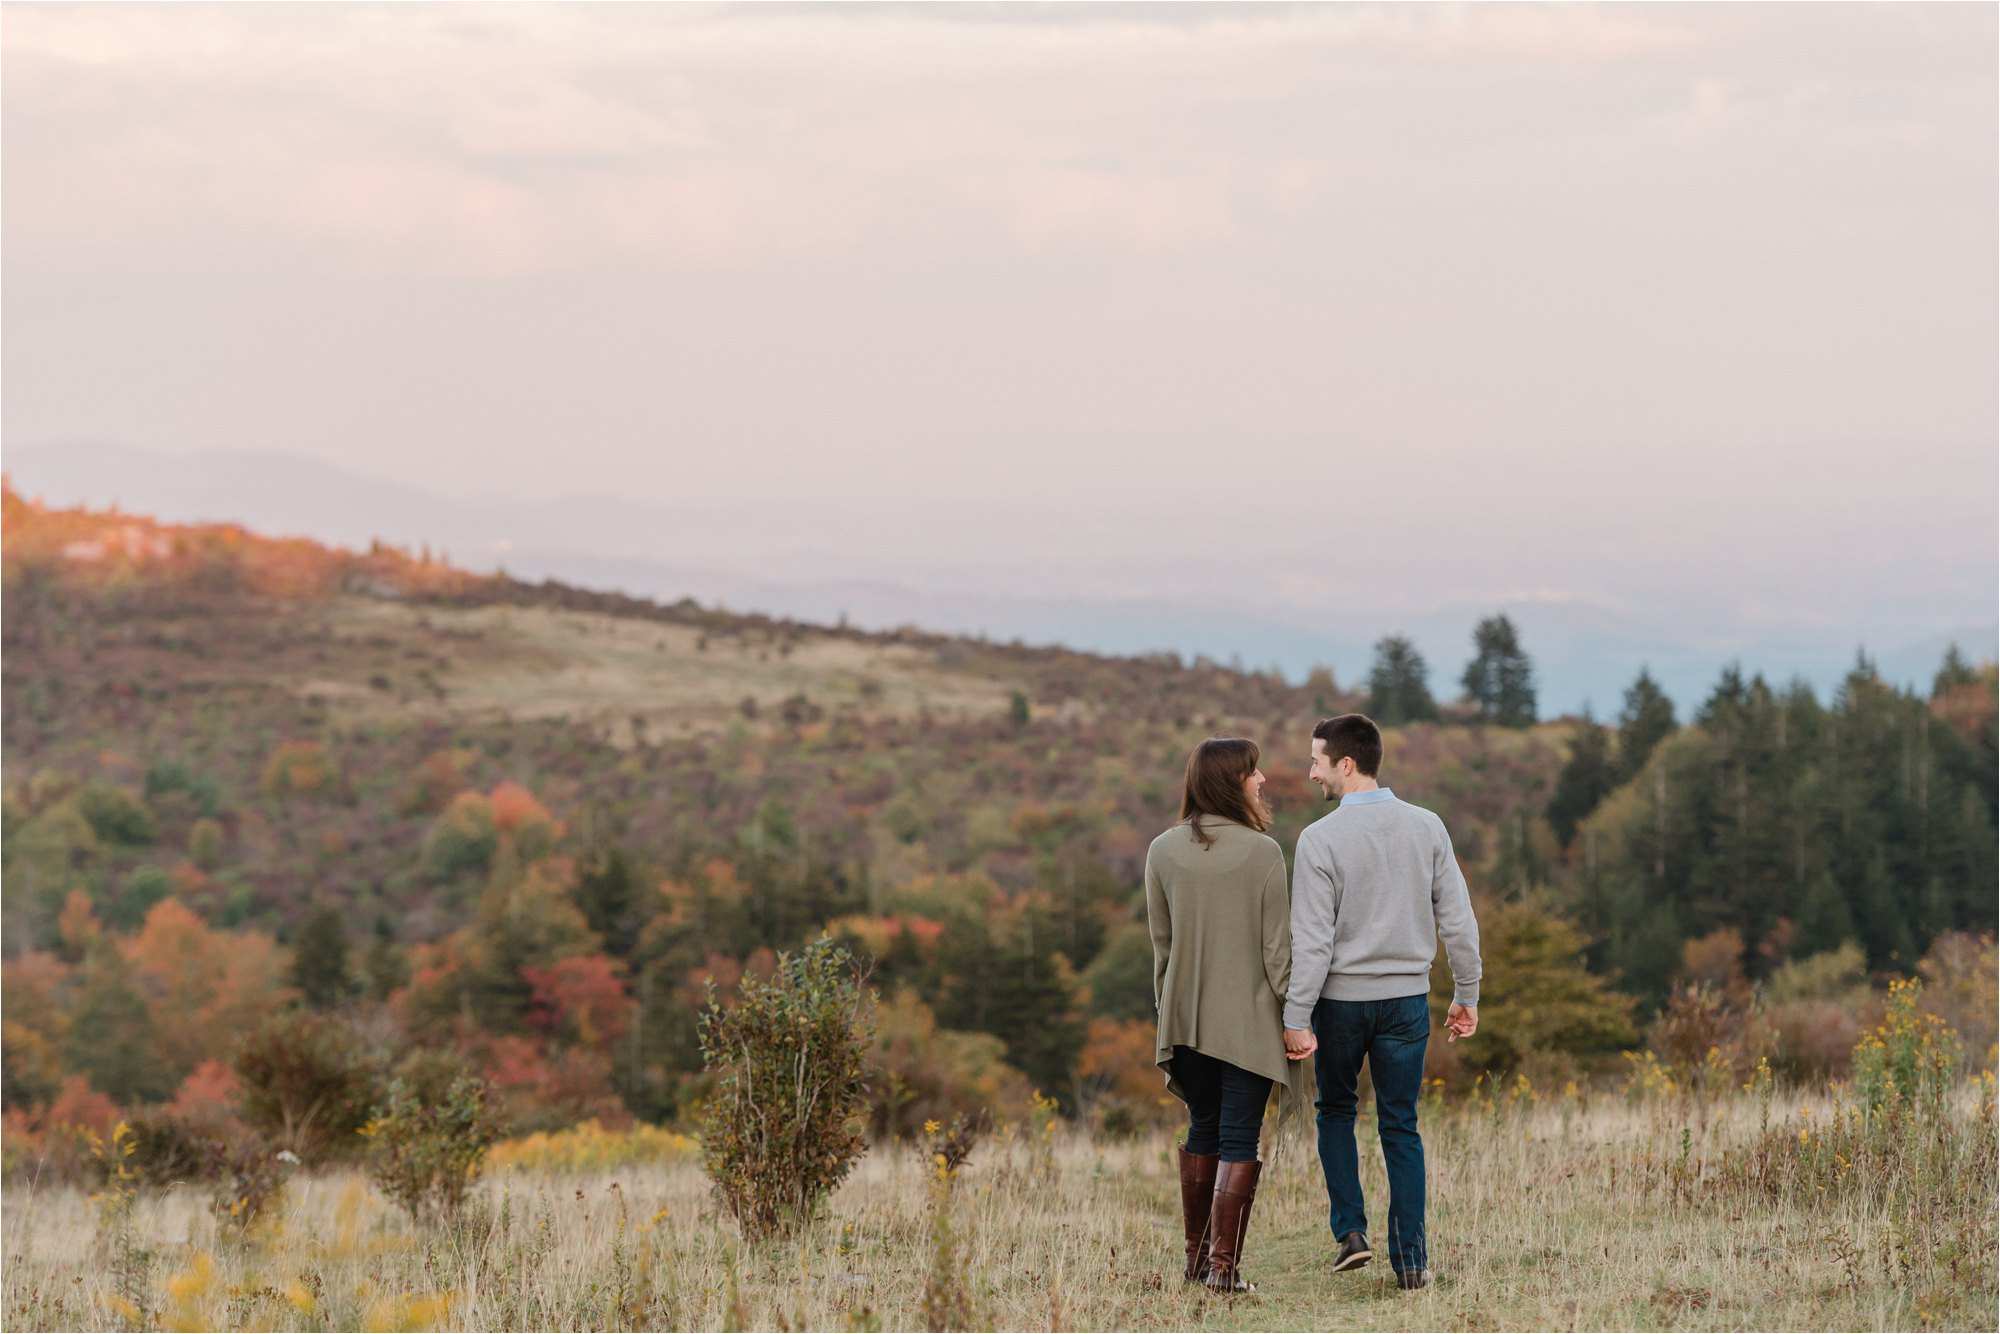 Engaged Couple walking at Blue Ridge Mountains